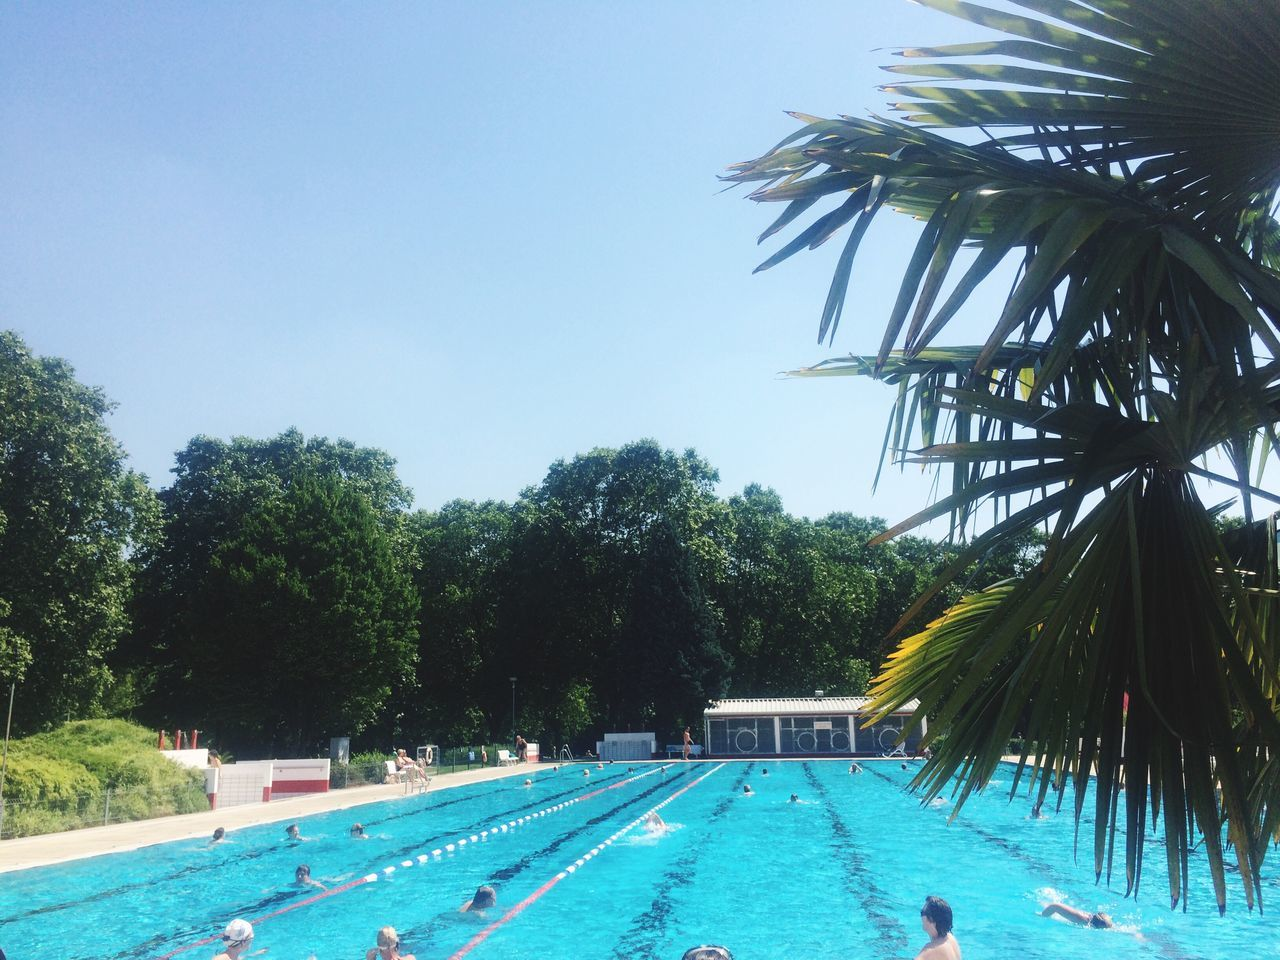 swimming pool, water, tree, palm tree, day, water park, outdoors, swimming, swimming lane marker, blue, nature, vacations, leisure activity, growth, real people, water slide, clear sky, sky, men, beauty in nature, one person, people